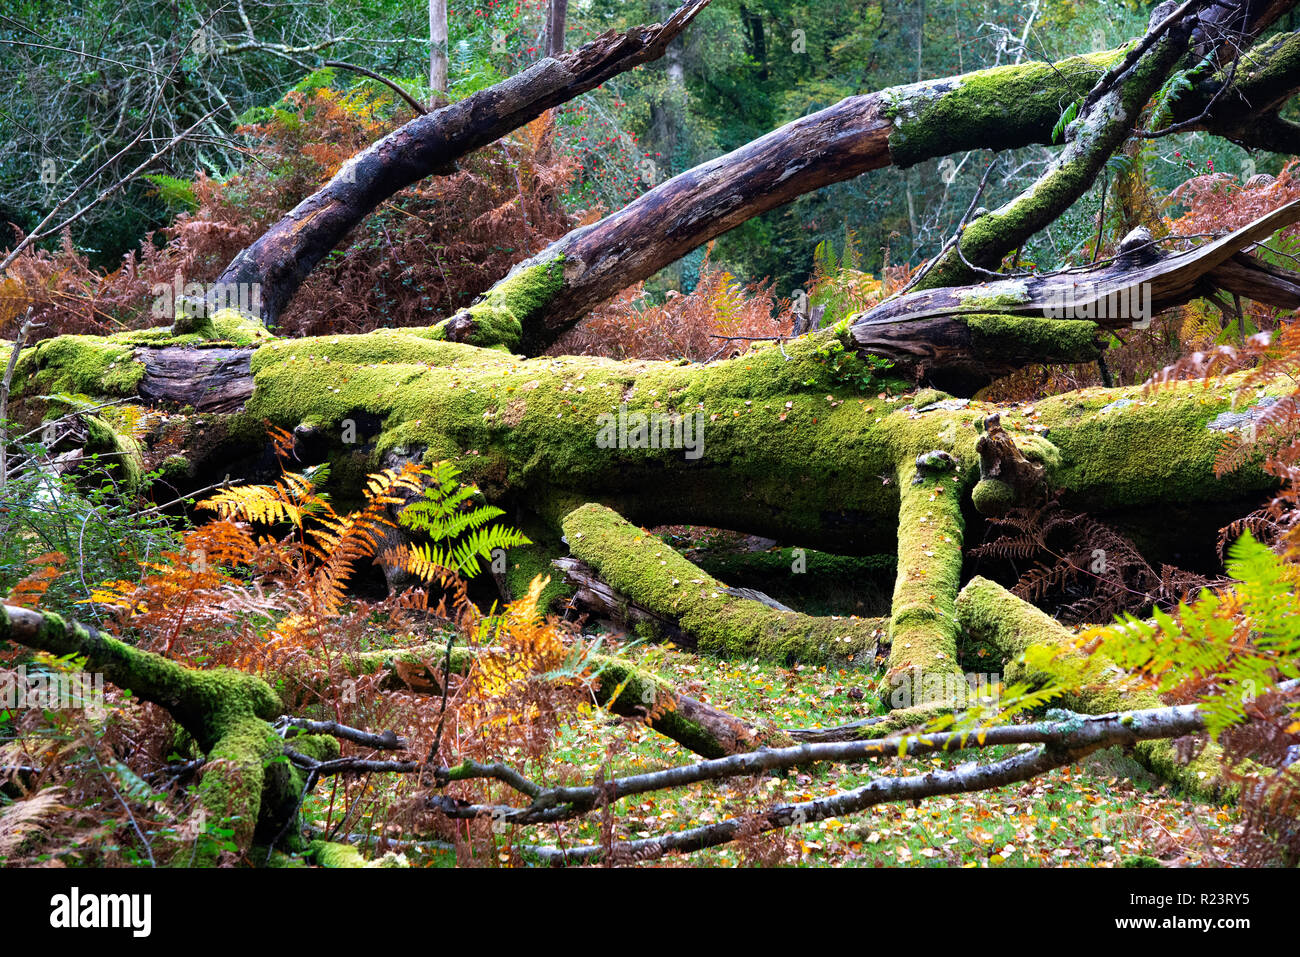 Old moss covered tree fallen to the ground in the New Forest National Park, Hampshire, UK, England Stock Photo